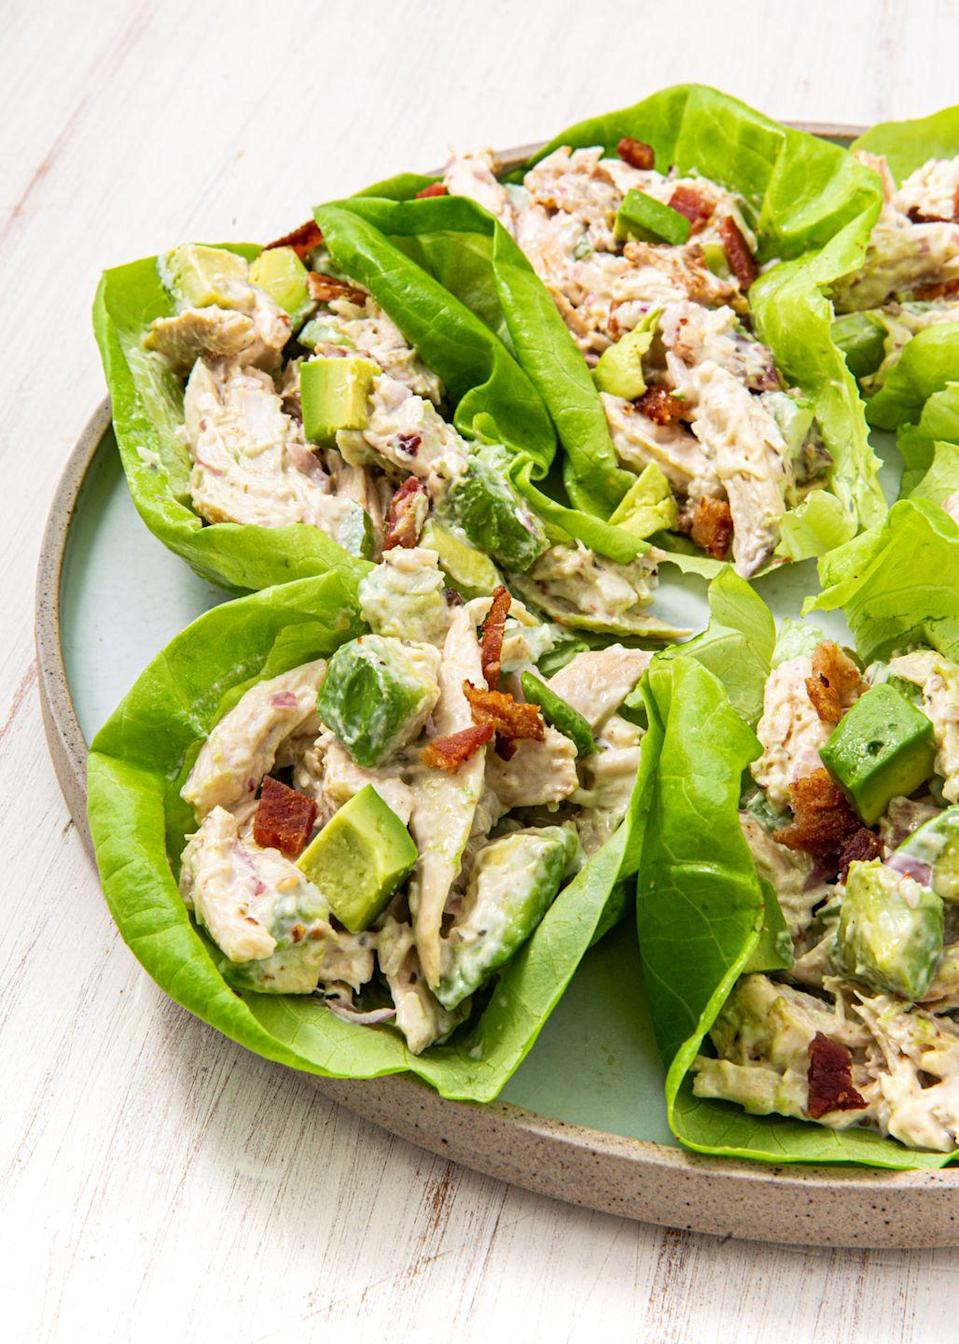 "<p>Fresh and won't weigh you down. What more could you need?</p><p>Get the recipe from <a href=""https://www.delish.com/cooking/nutrition/a30325209/keto-chicken-salad-recipe/"" rel=""nofollow noopener"" target=""_blank"" data-ylk=""slk:Delish"" class=""link rapid-noclick-resp"">Delish</a>. </p>"